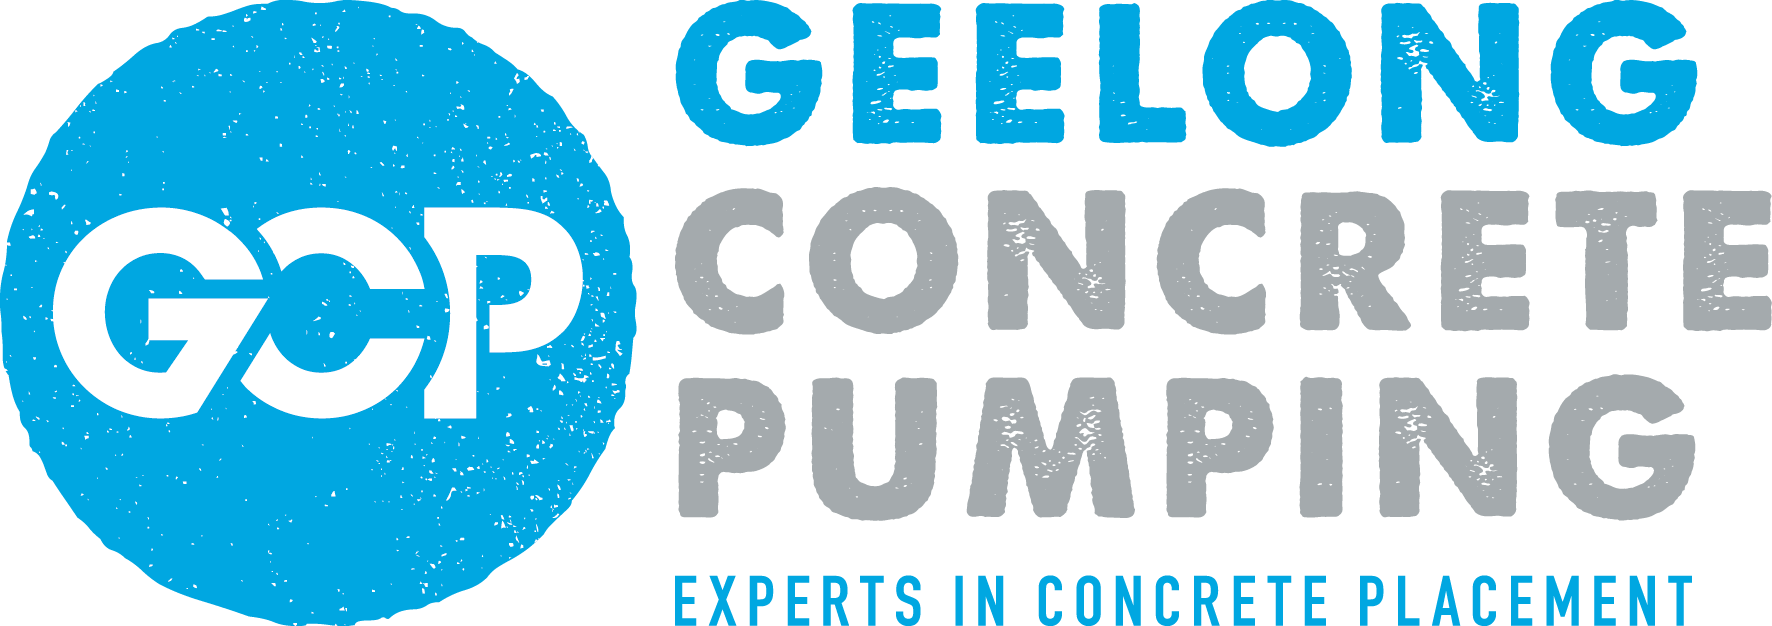 Geelong Concrete Pumping Logo